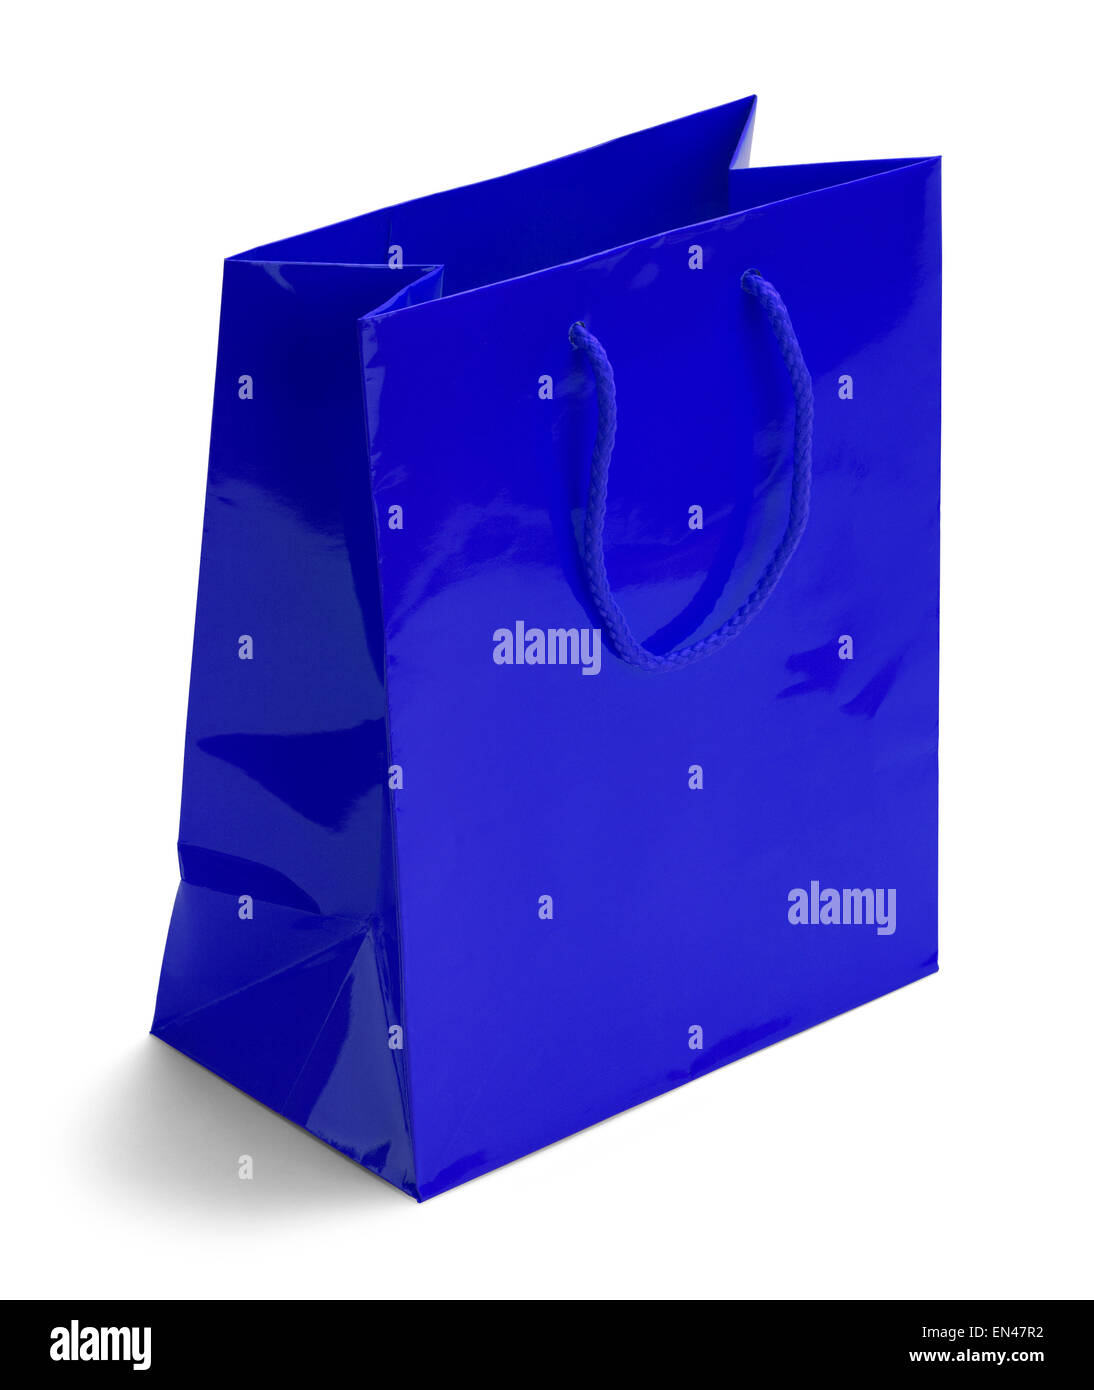 Shiny Blue Retail Shopping Bag Isolated on a White Background. - Stock Image